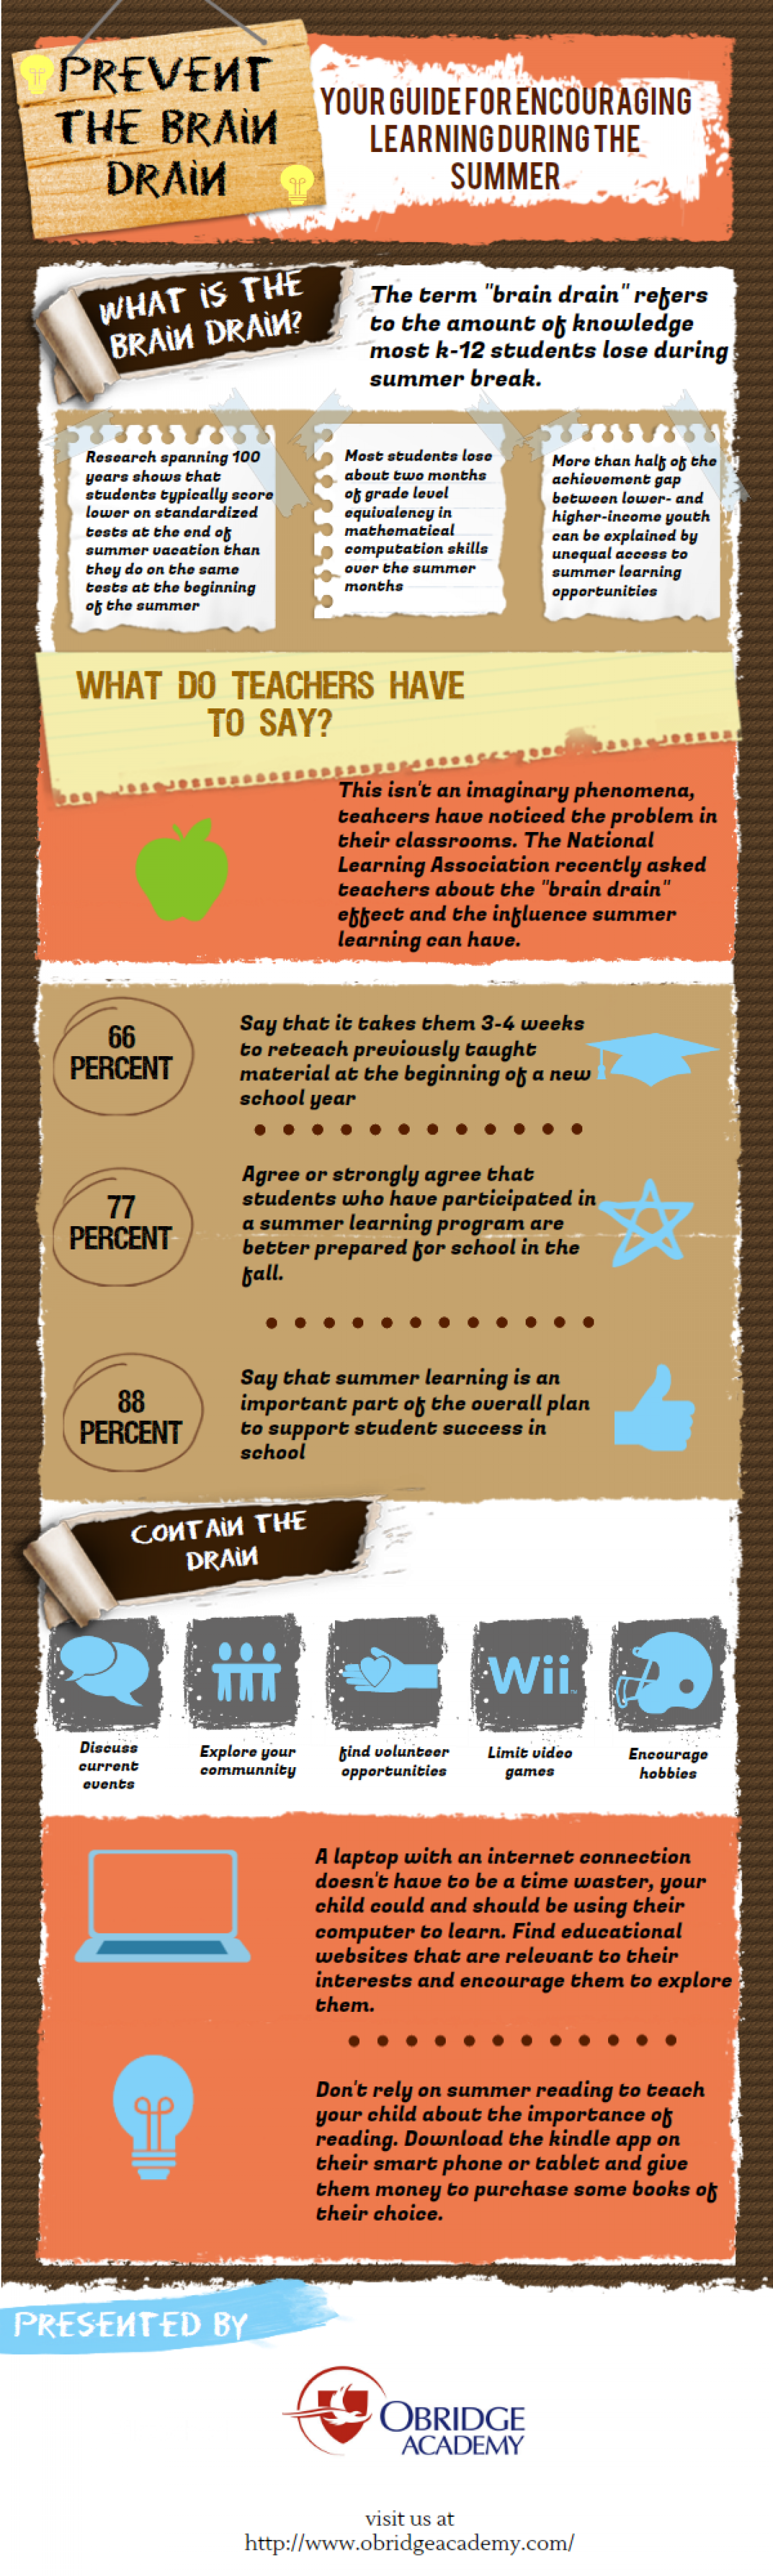 Prevent the Brain Drain Infographic